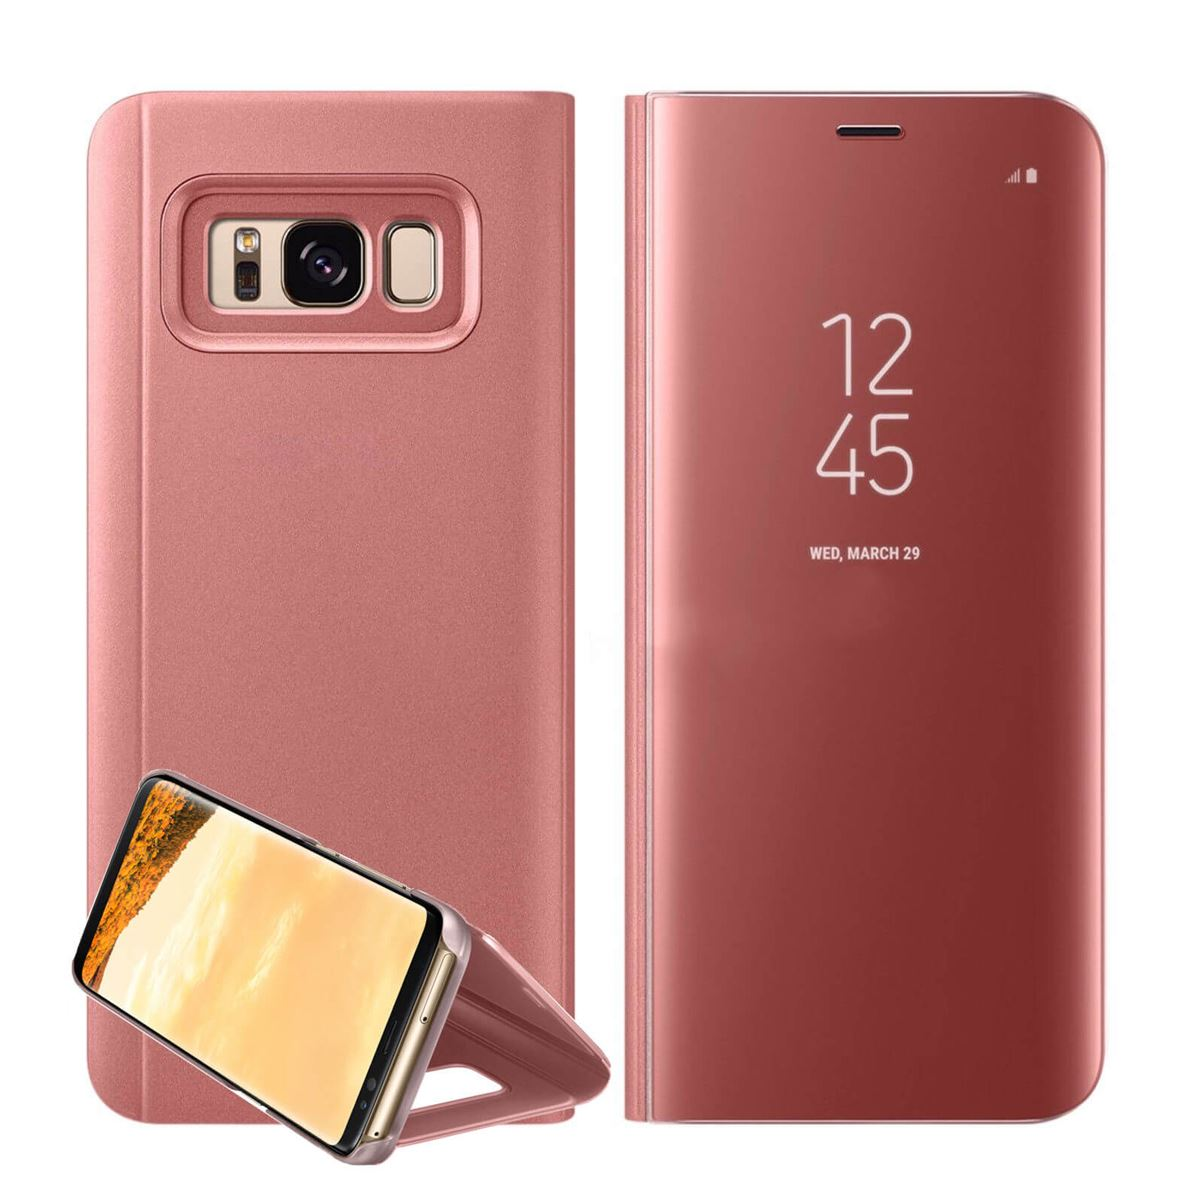 New-Samsung-Galaxy-S10-S9-S8-Smart-View-Mirror-Leather-Flip-Stand-Case-Cover thumbnail 32